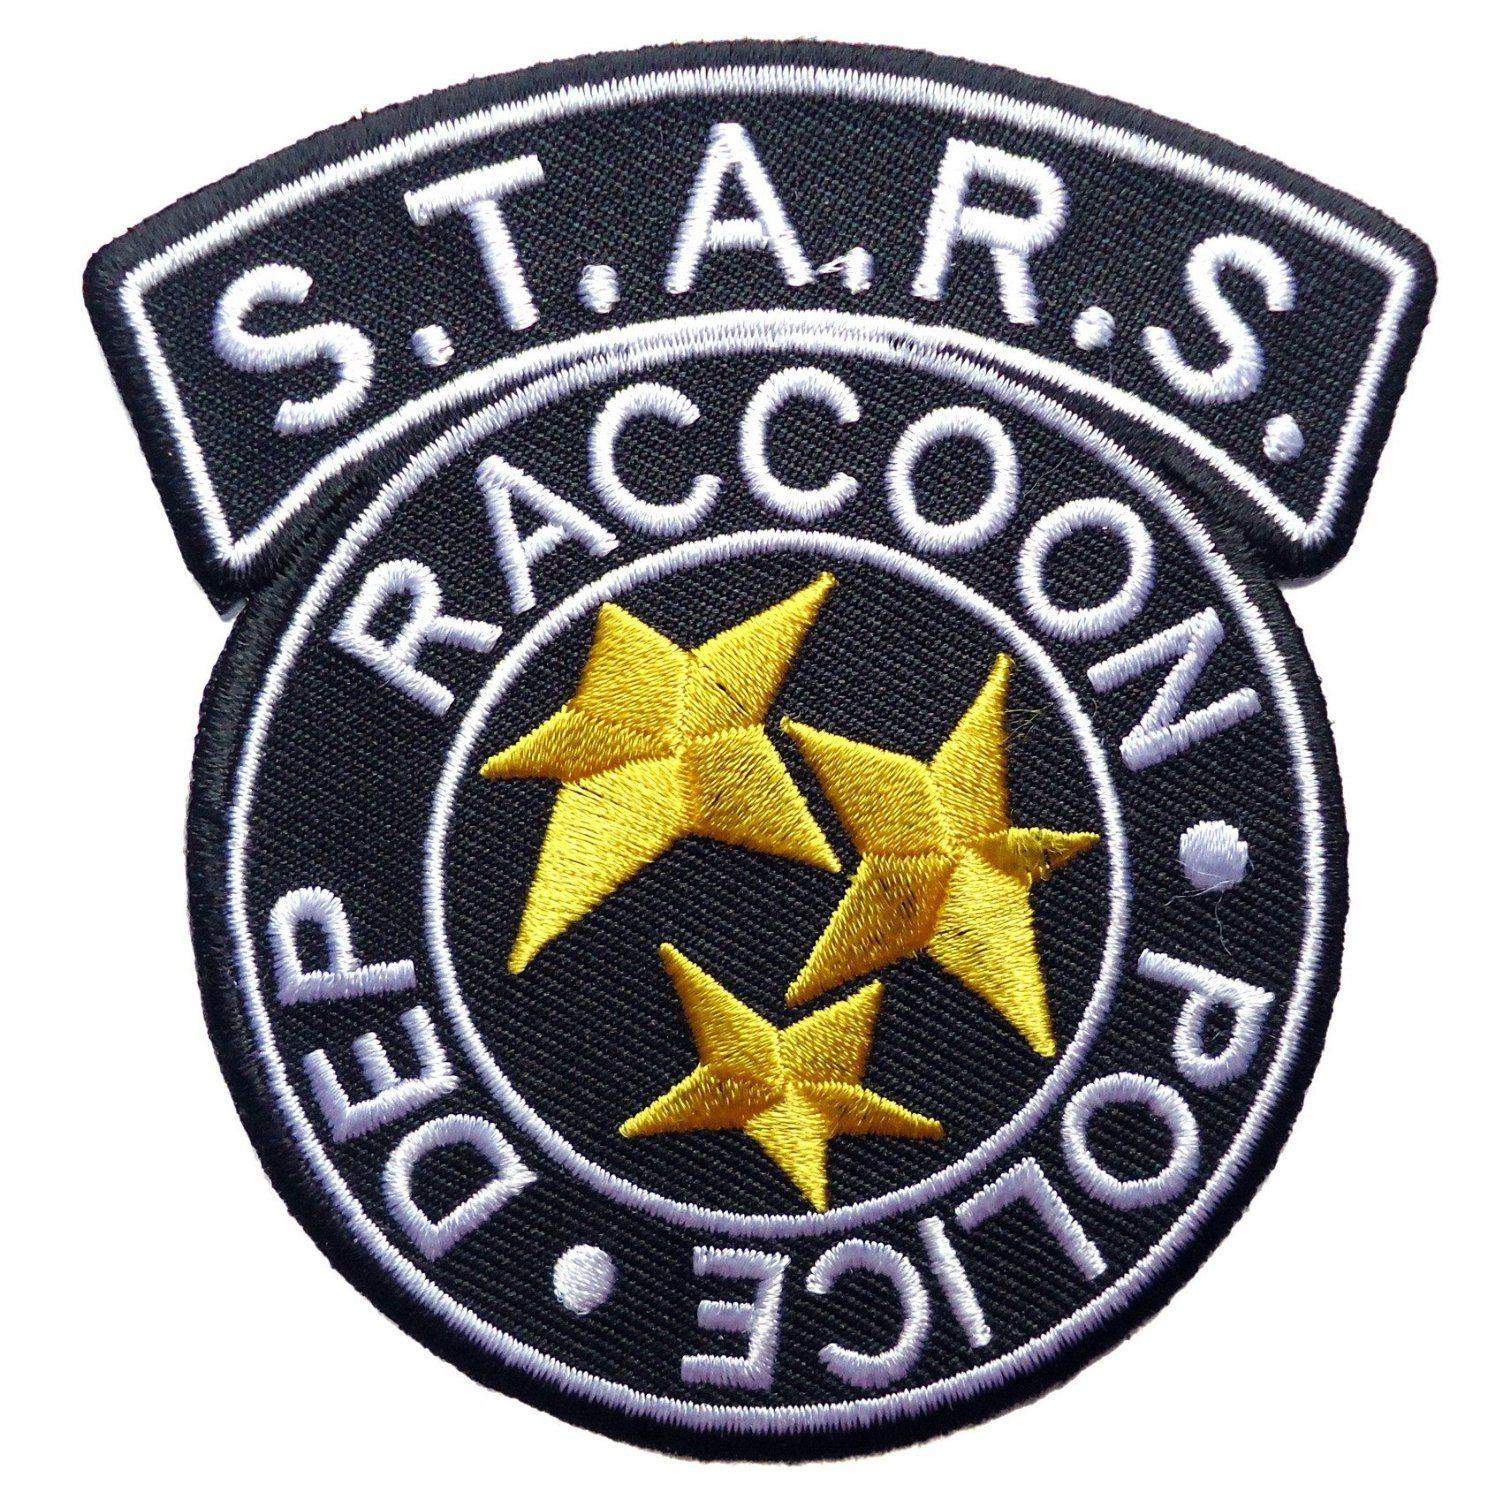 Amazon Com Resident Evil S T A R S Raccoon Police Blk Logo Patch Everything Else Resident Evil Tattoo Resident Evil Resident Evil Raccoon City